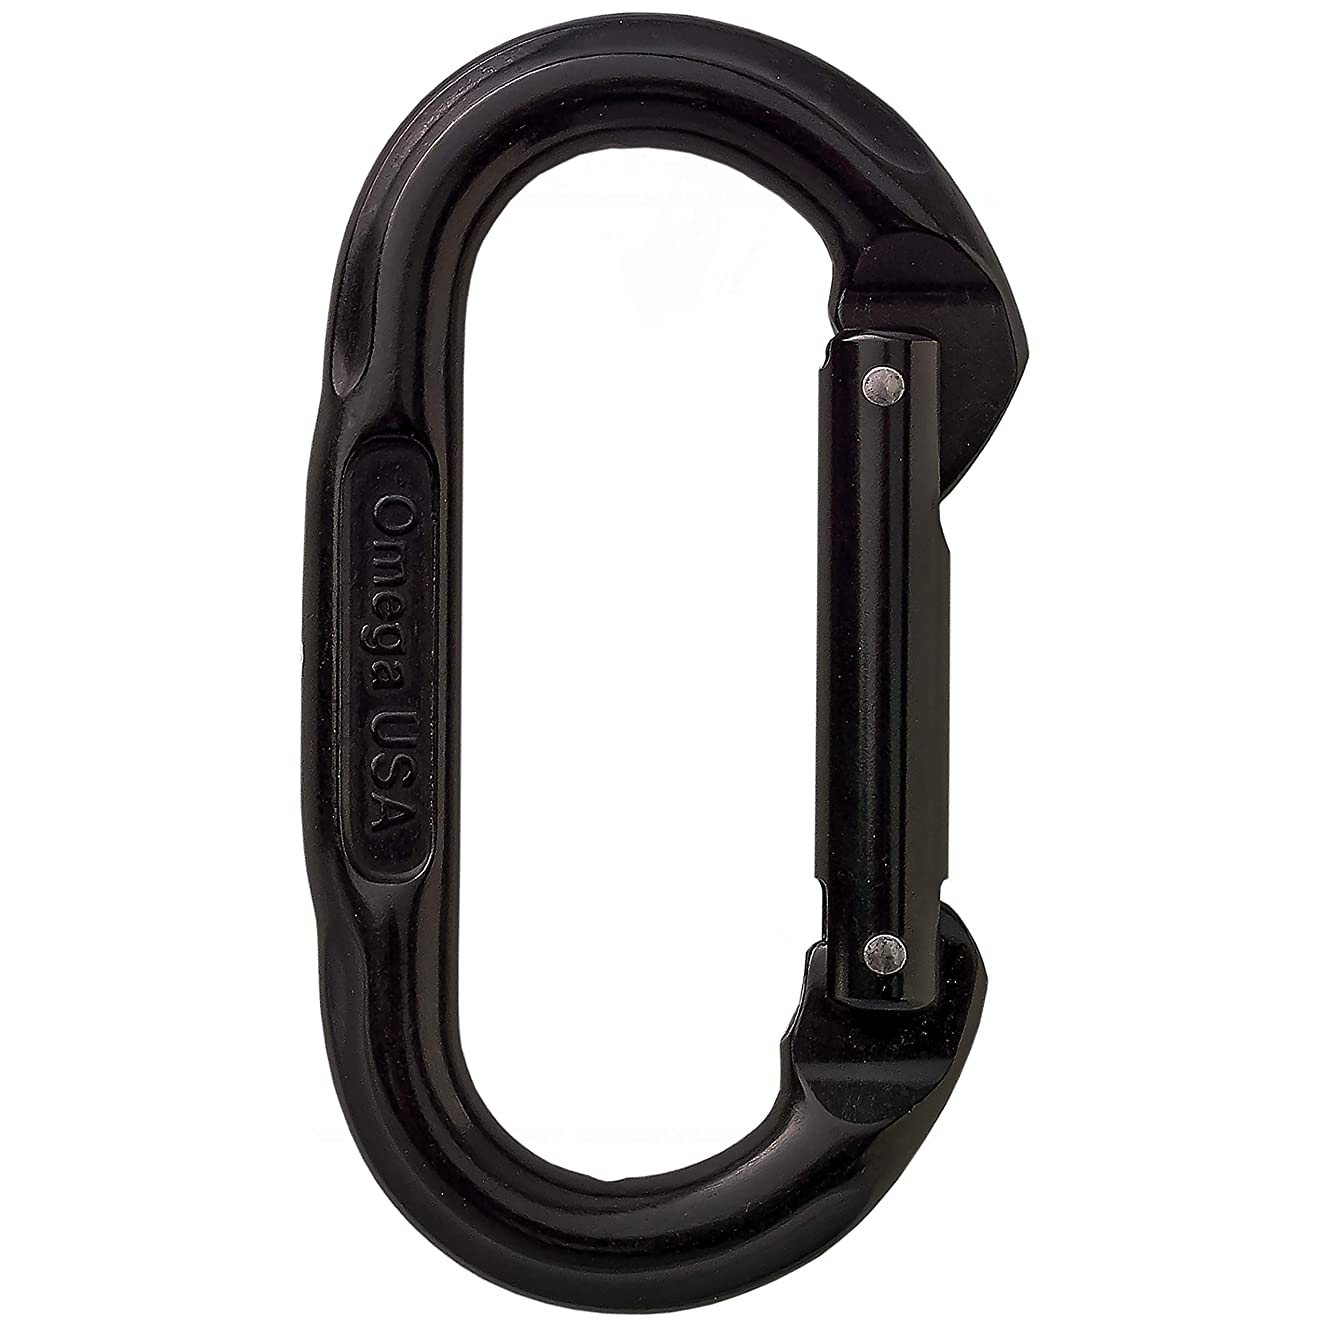 Omega Pacific Carabiner Oval, Non Locking, Black, USA Made, ISO Cold Forged Aircraft Aluminum Alloy for Climbing, Safety, Rescue, Industrial, and Arborist Uses